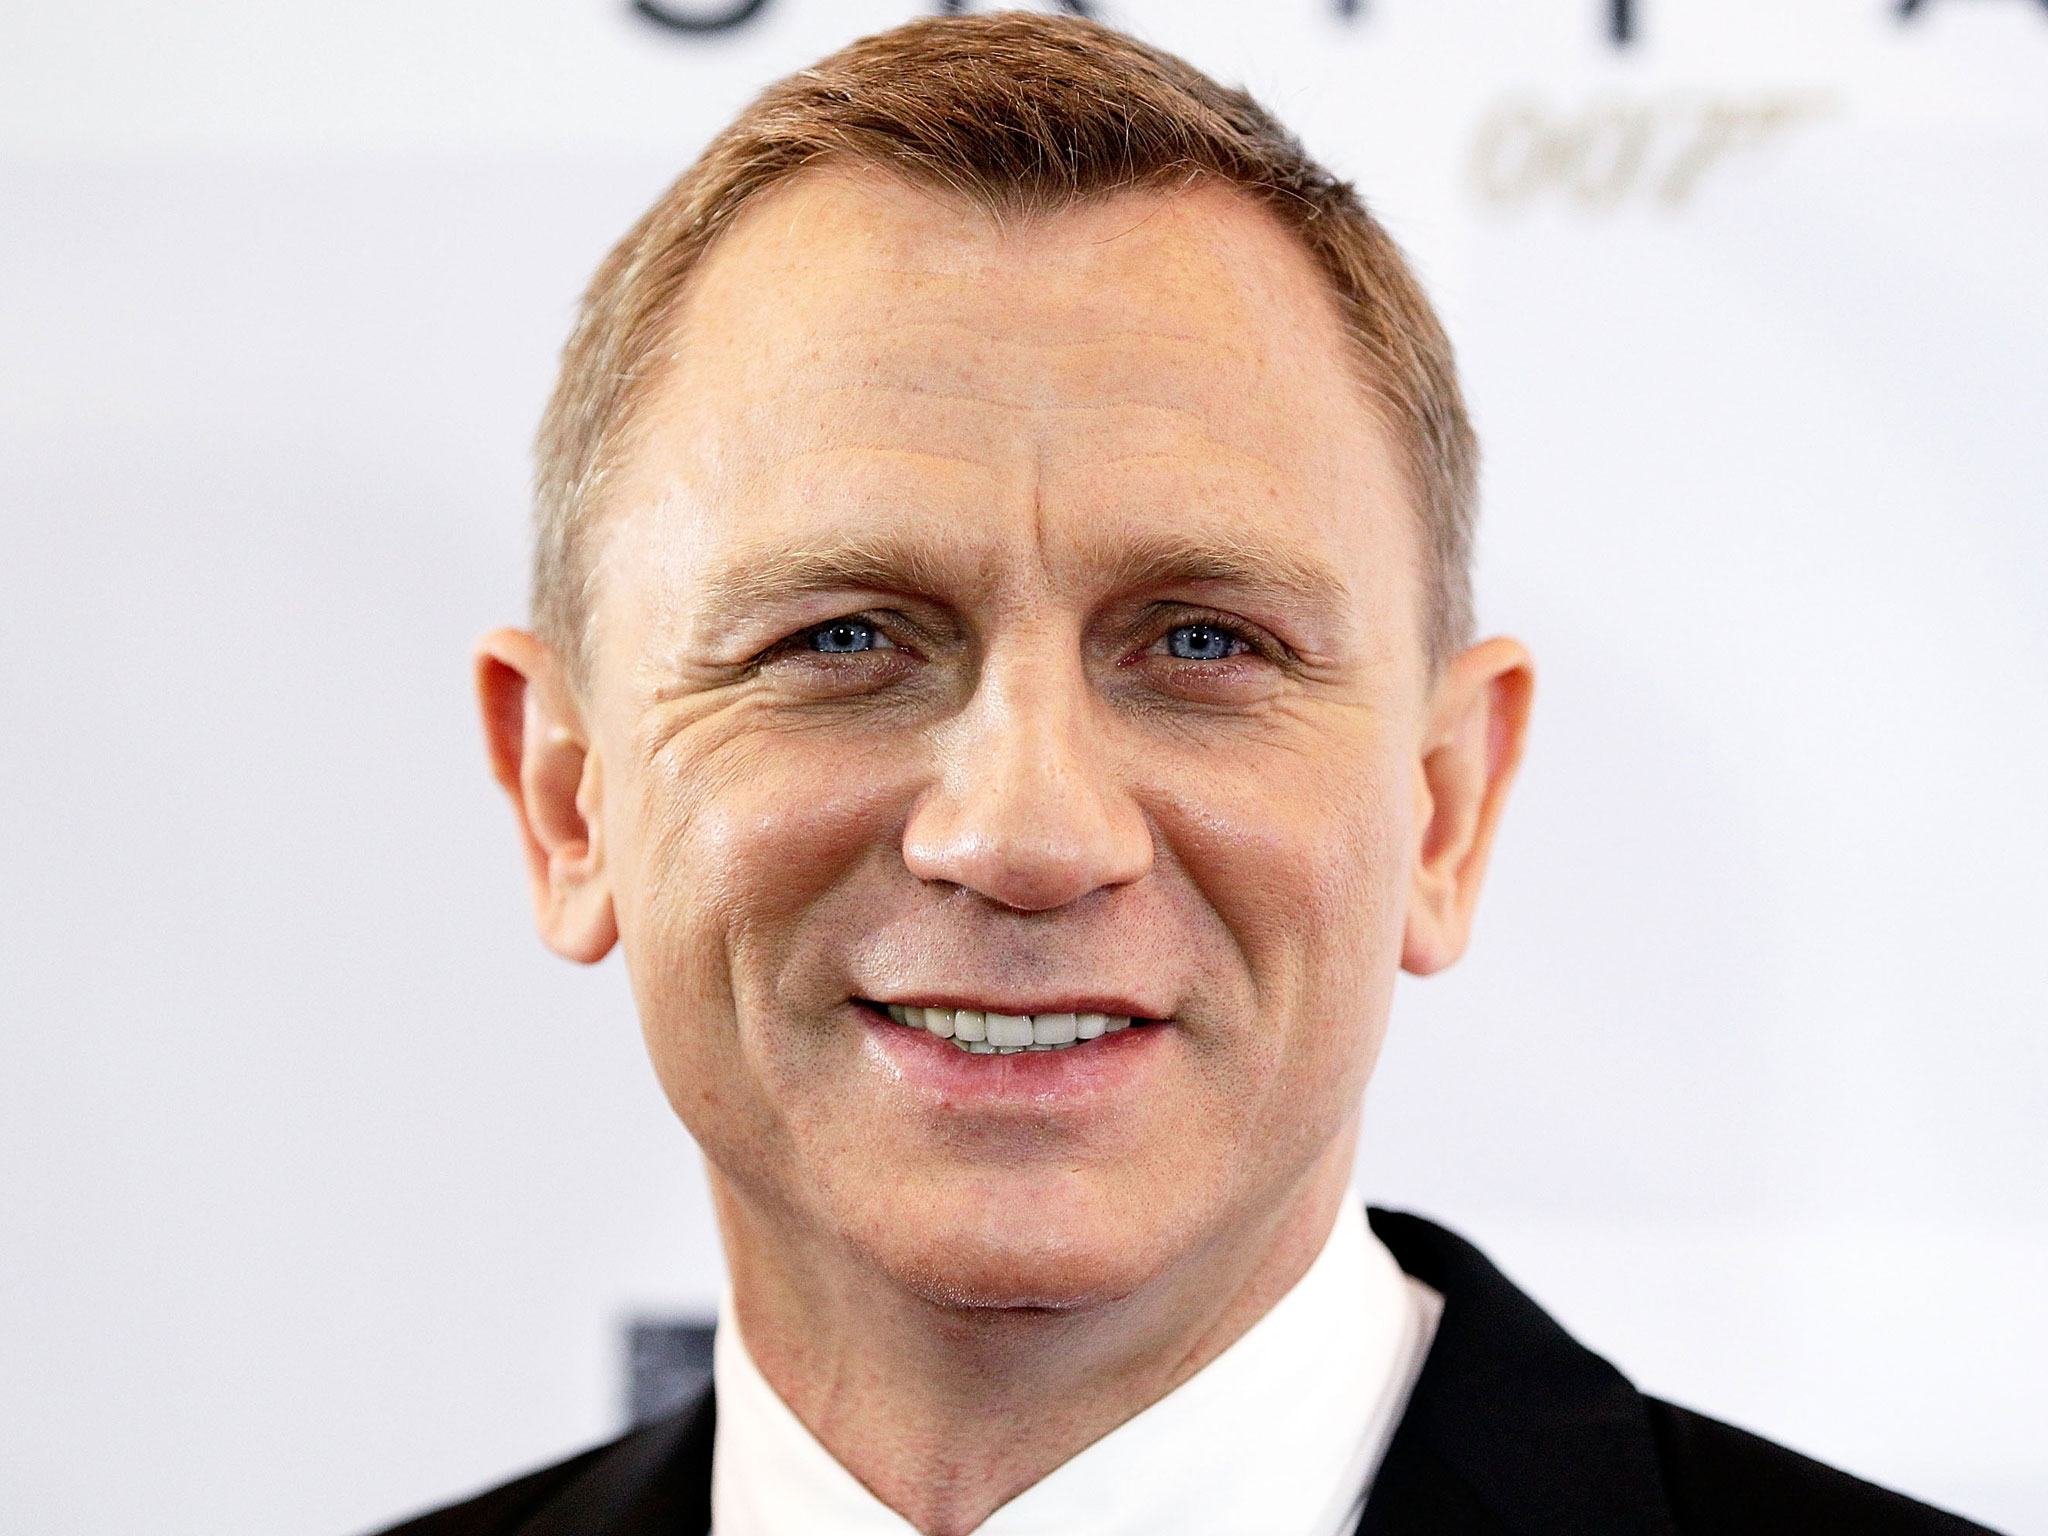 Daniel Craig forced to undergo surgery after being injured on James Bond set | The Independent